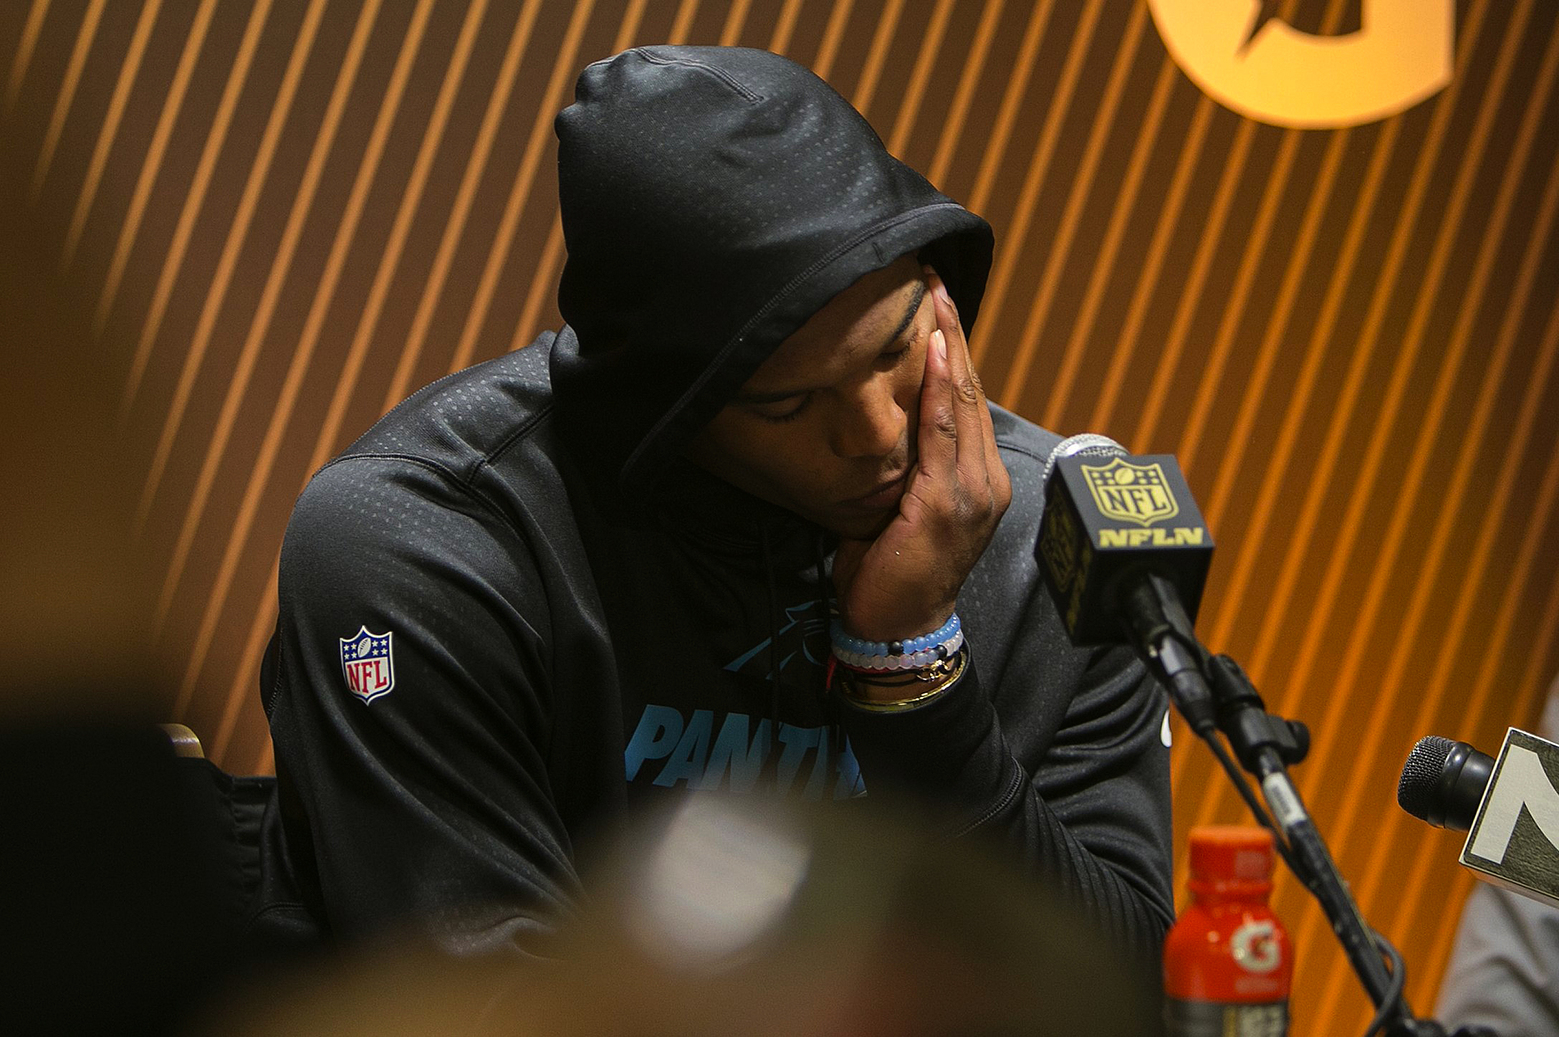 Commentary: Cam Newton didn't hold up his end of bargain at news conference after Super Bowl